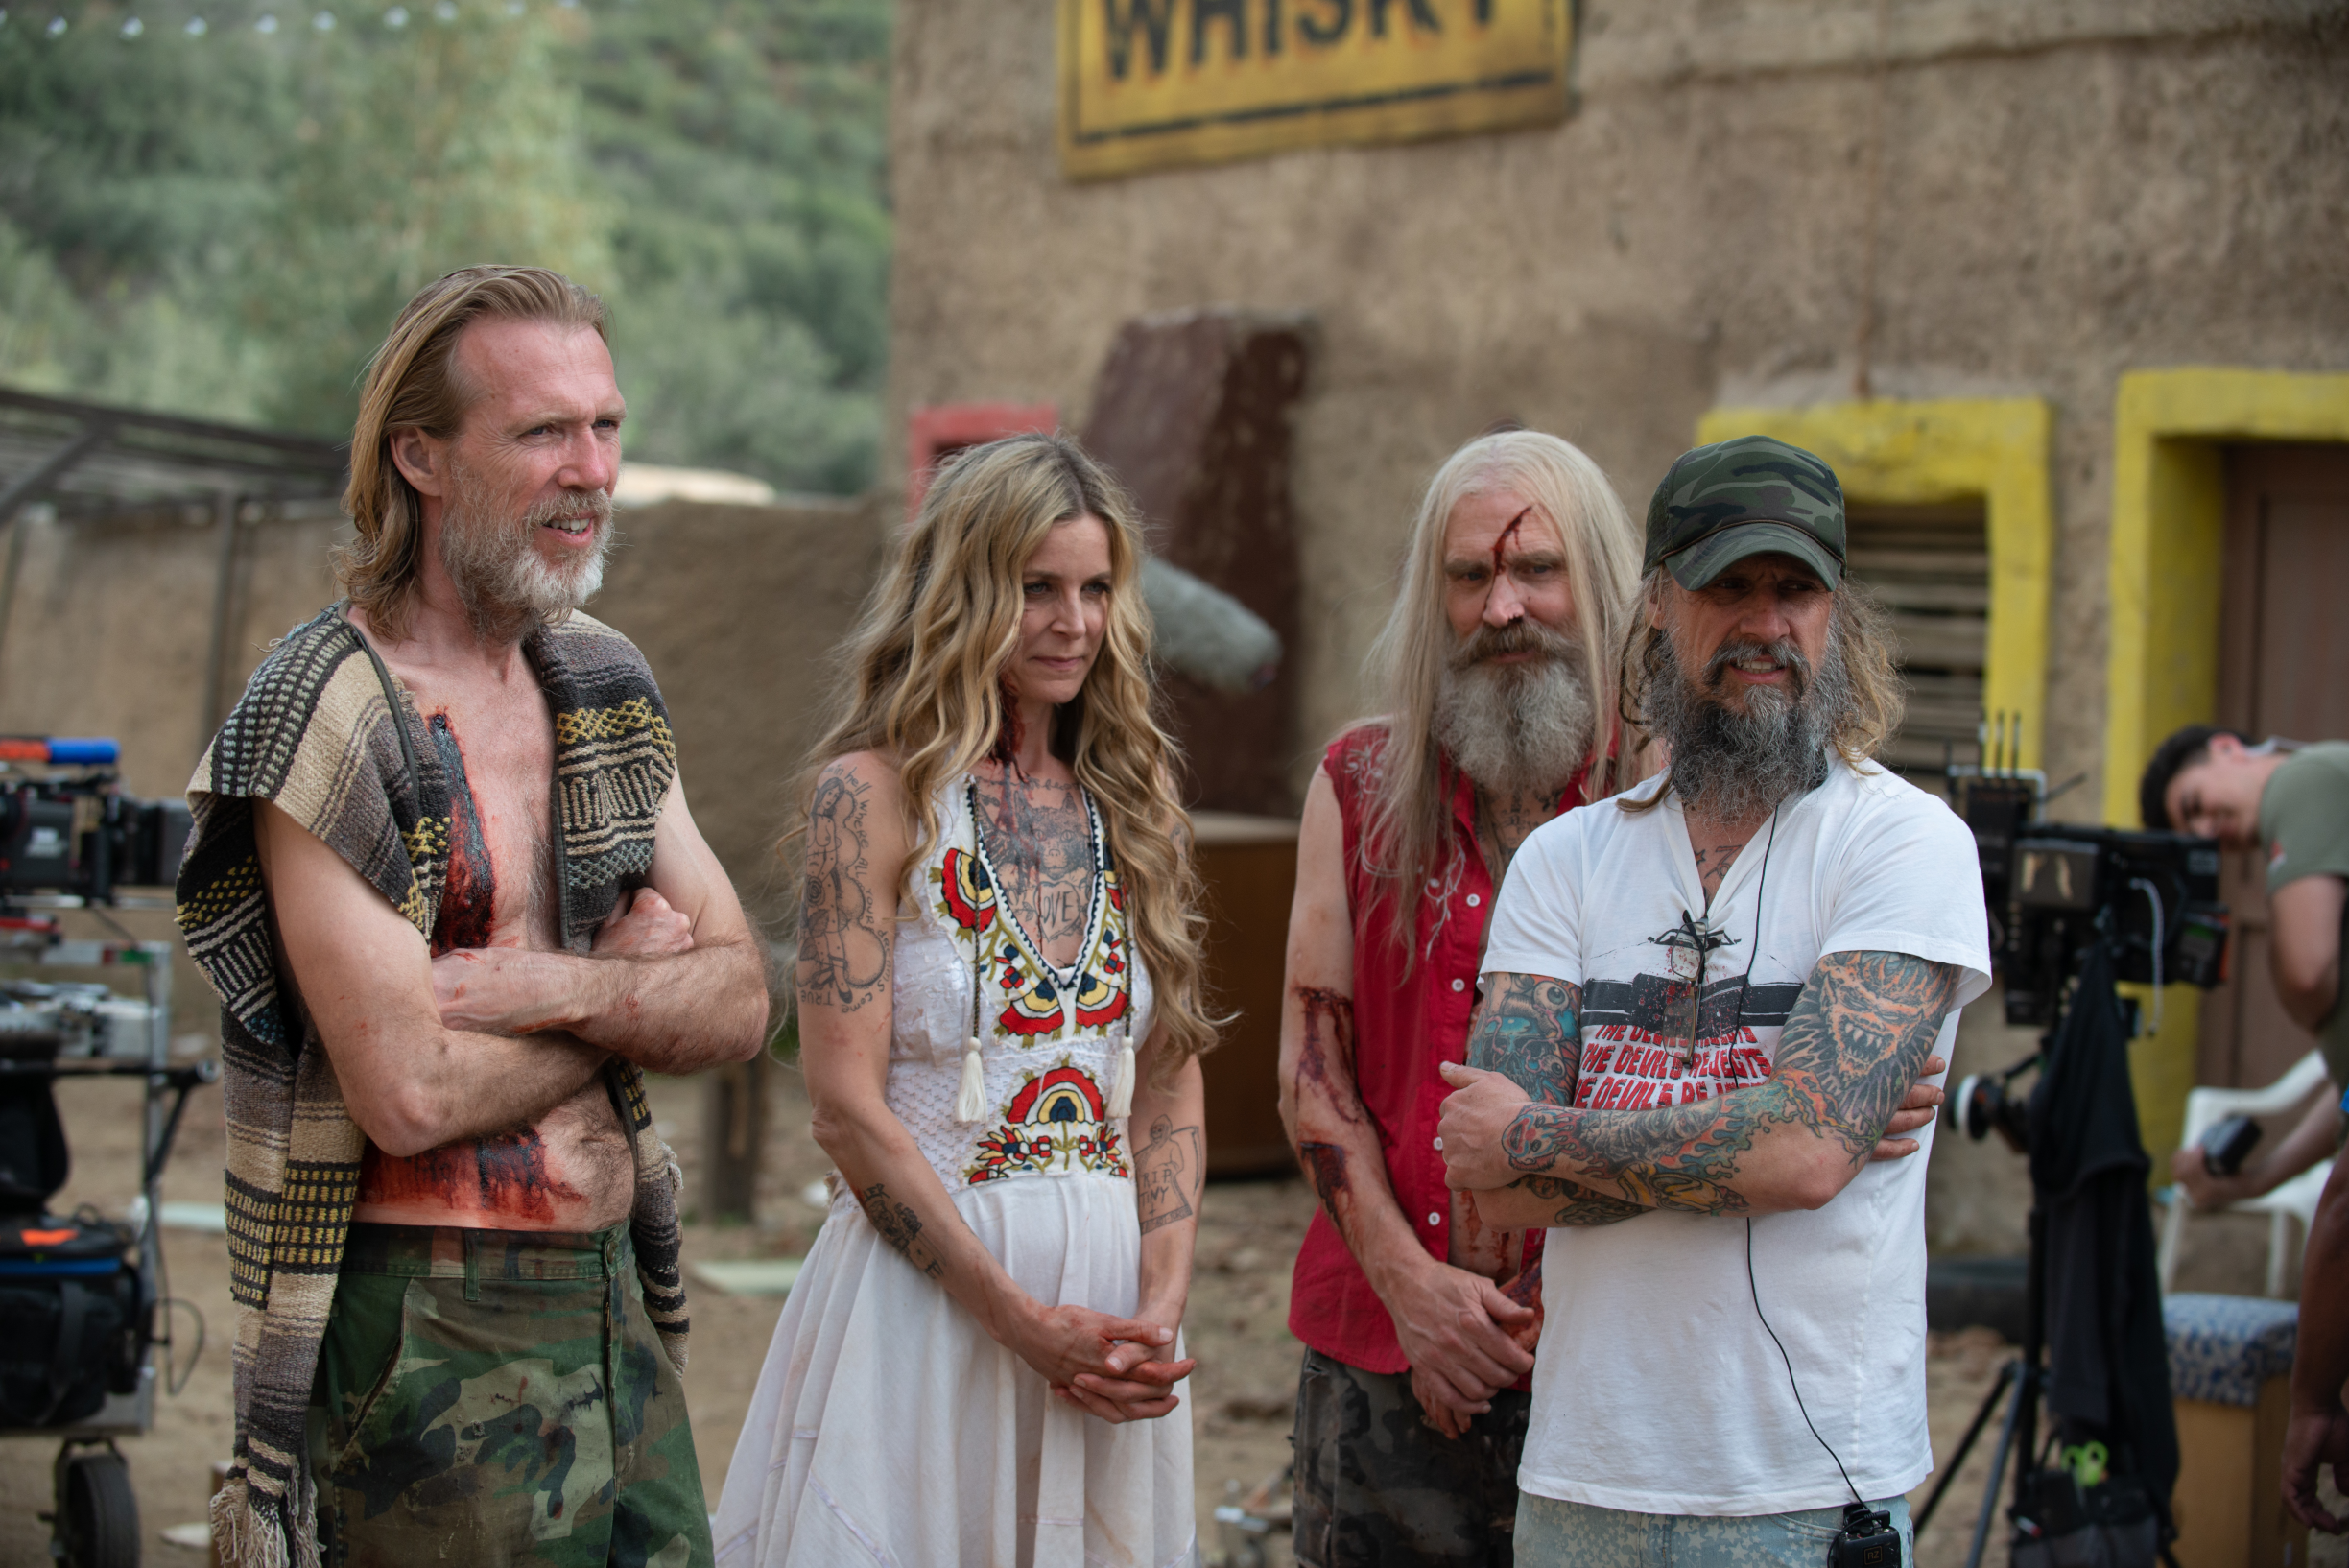 The 3 with Rob Zombie